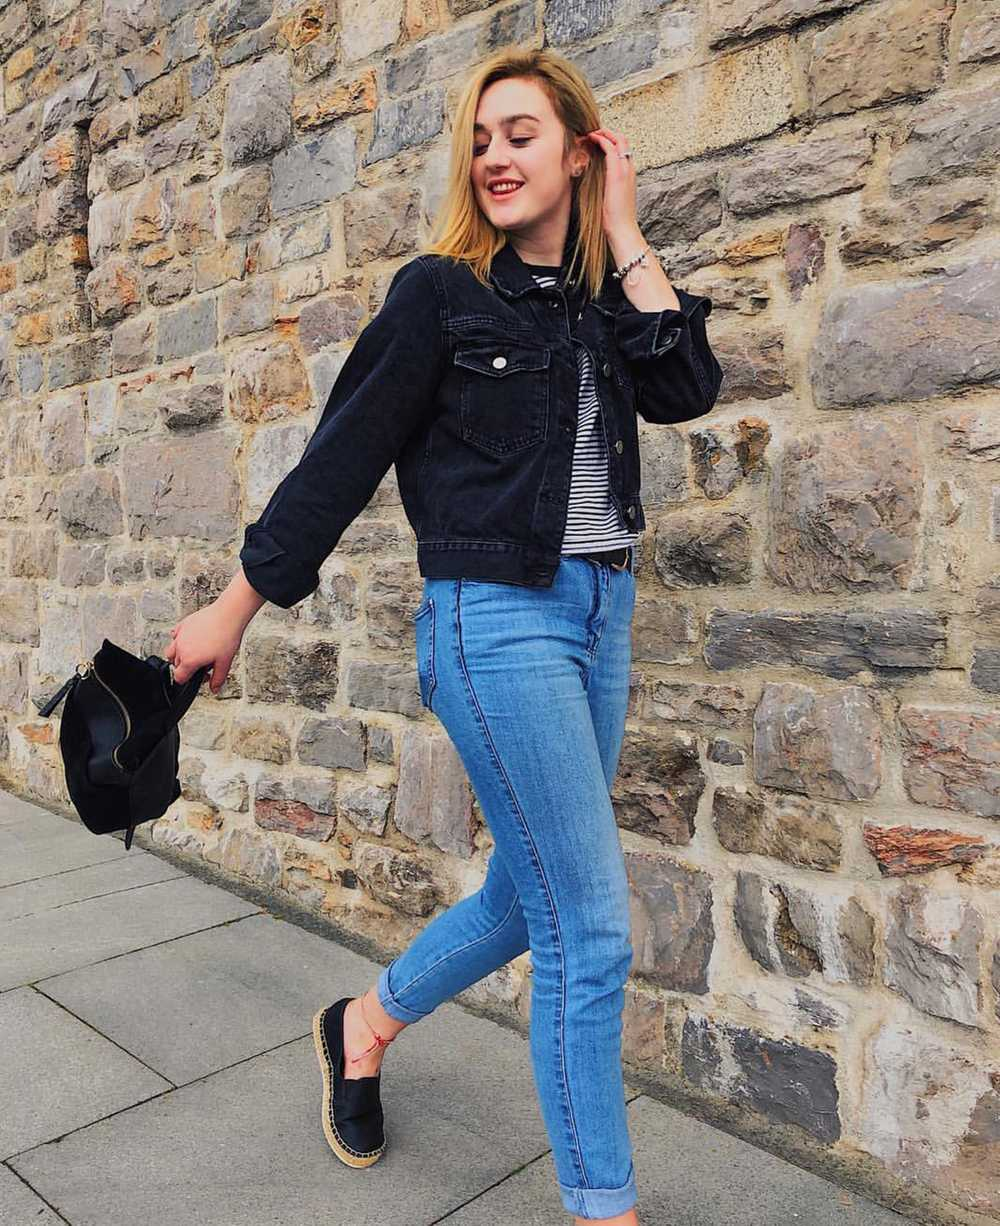 Jeans and a nice tee outfit by Jeanie Lauren